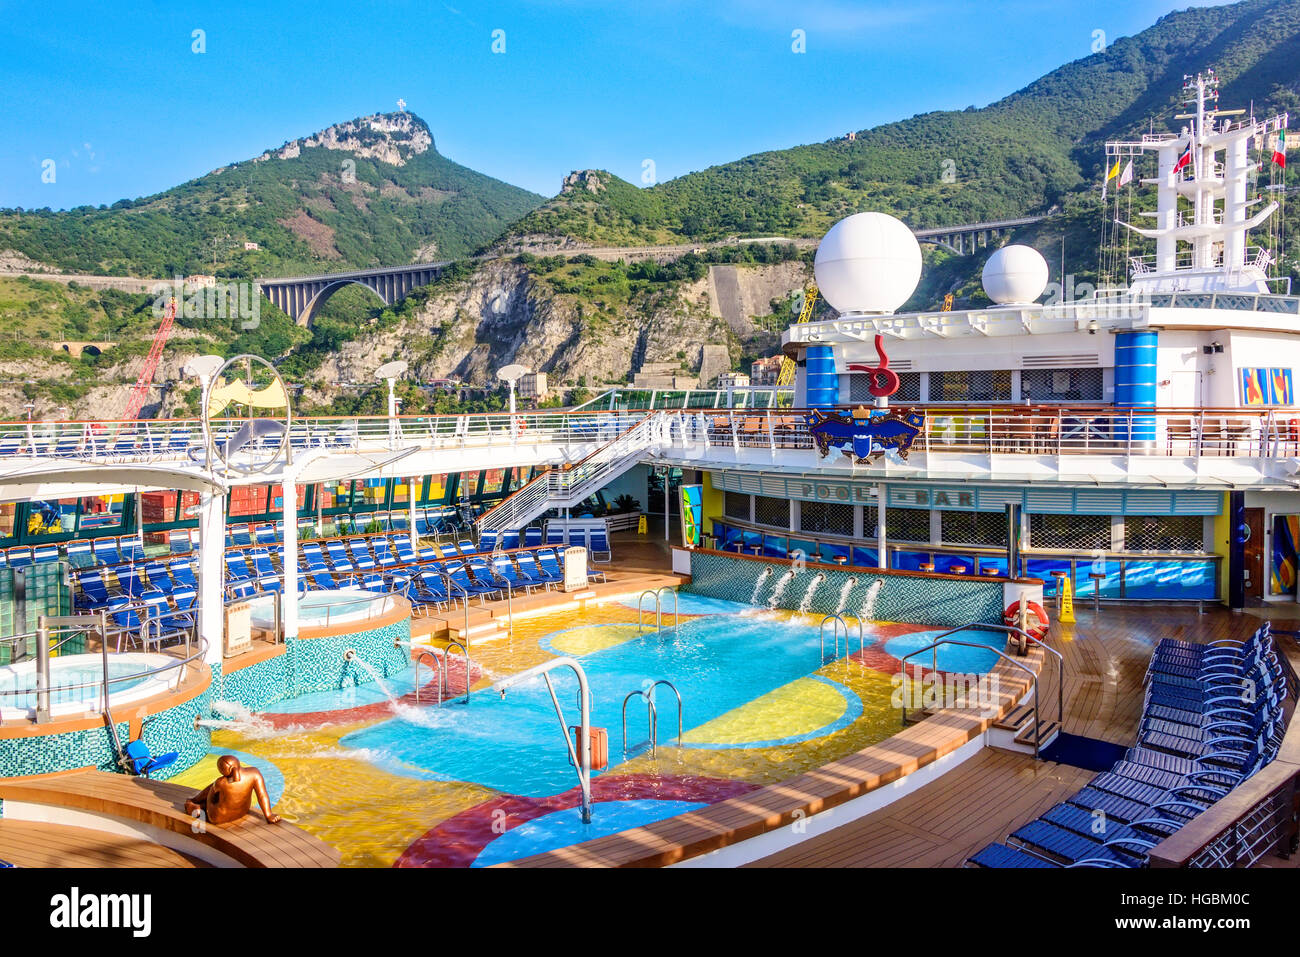 kreuzfahrtschiff im hafen von salerno an der amalfi k ste in italien verankert stockfoto bild. Black Bedroom Furniture Sets. Home Design Ideas